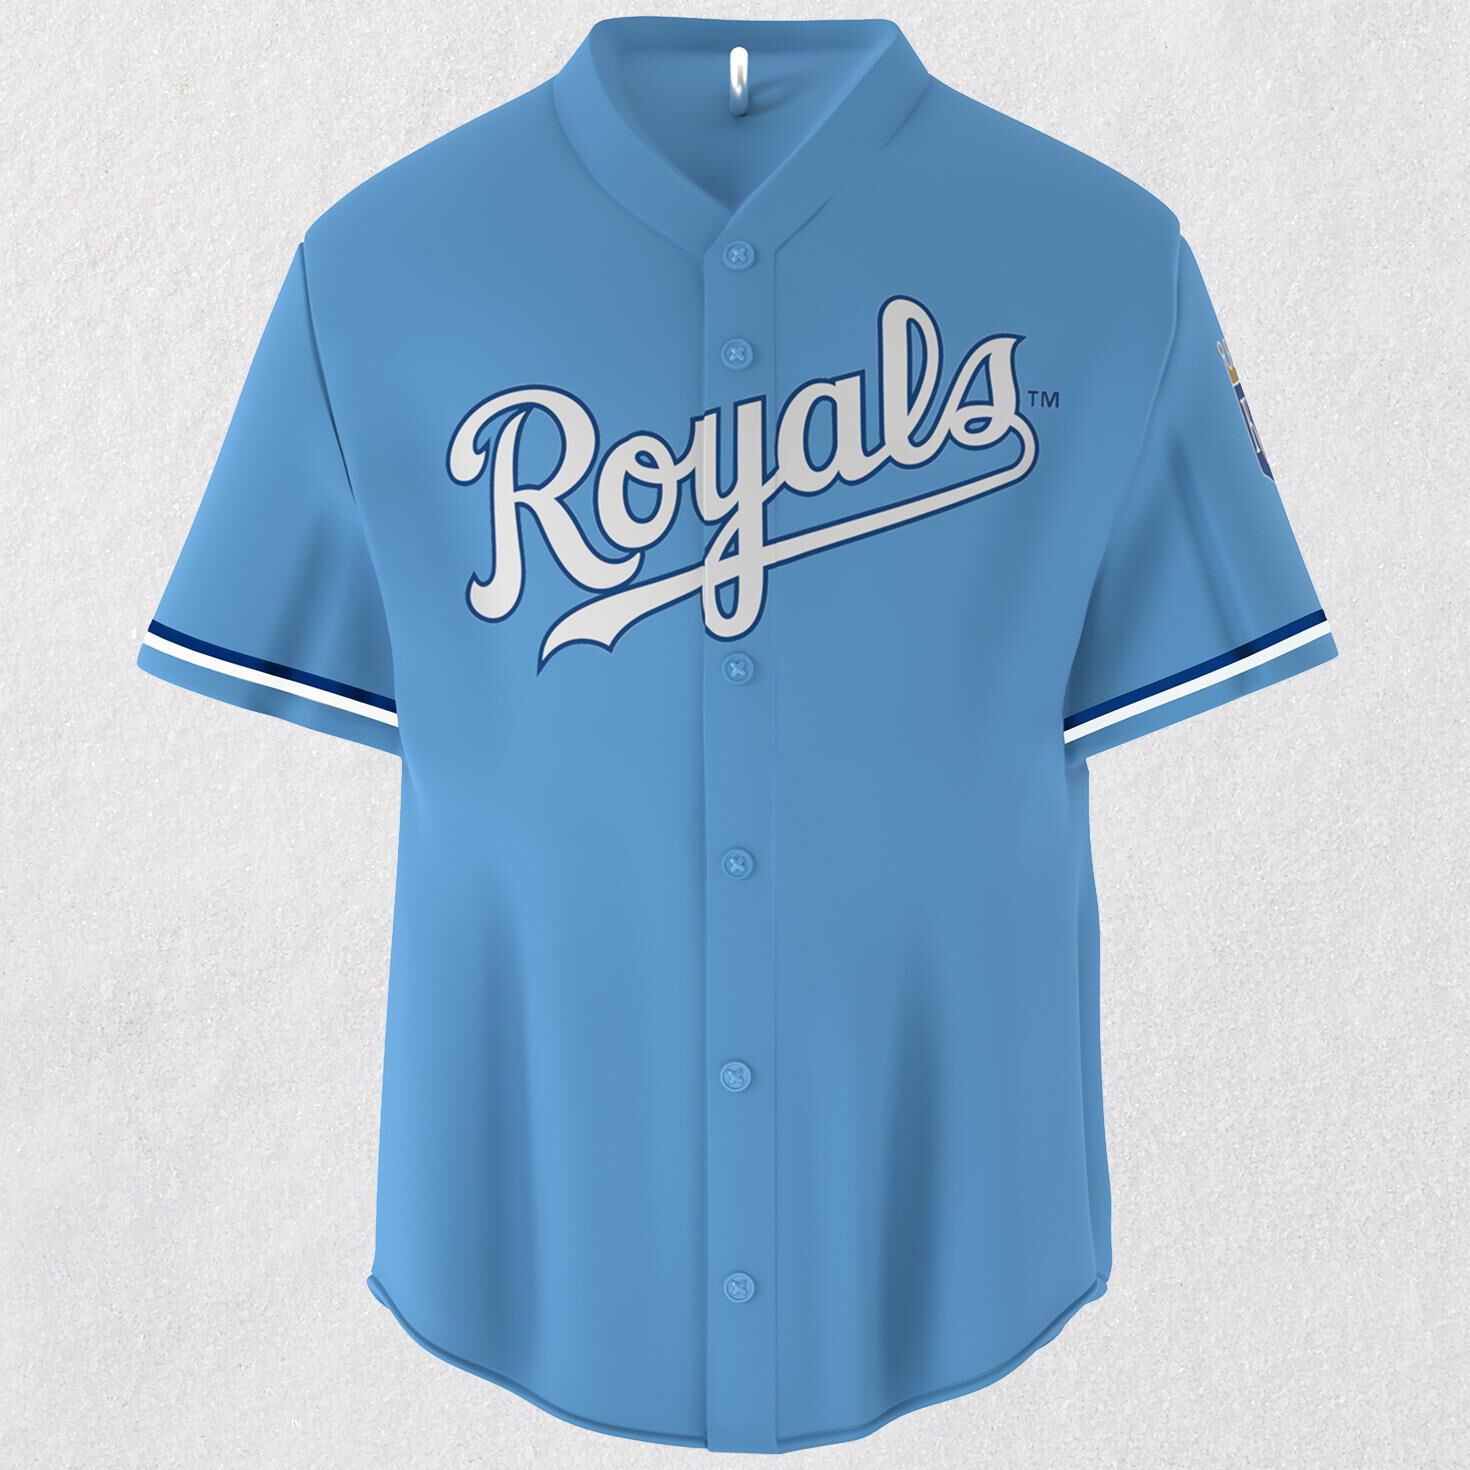 best collections of royals christmas ornament all can download - Royals Christmas Ornament